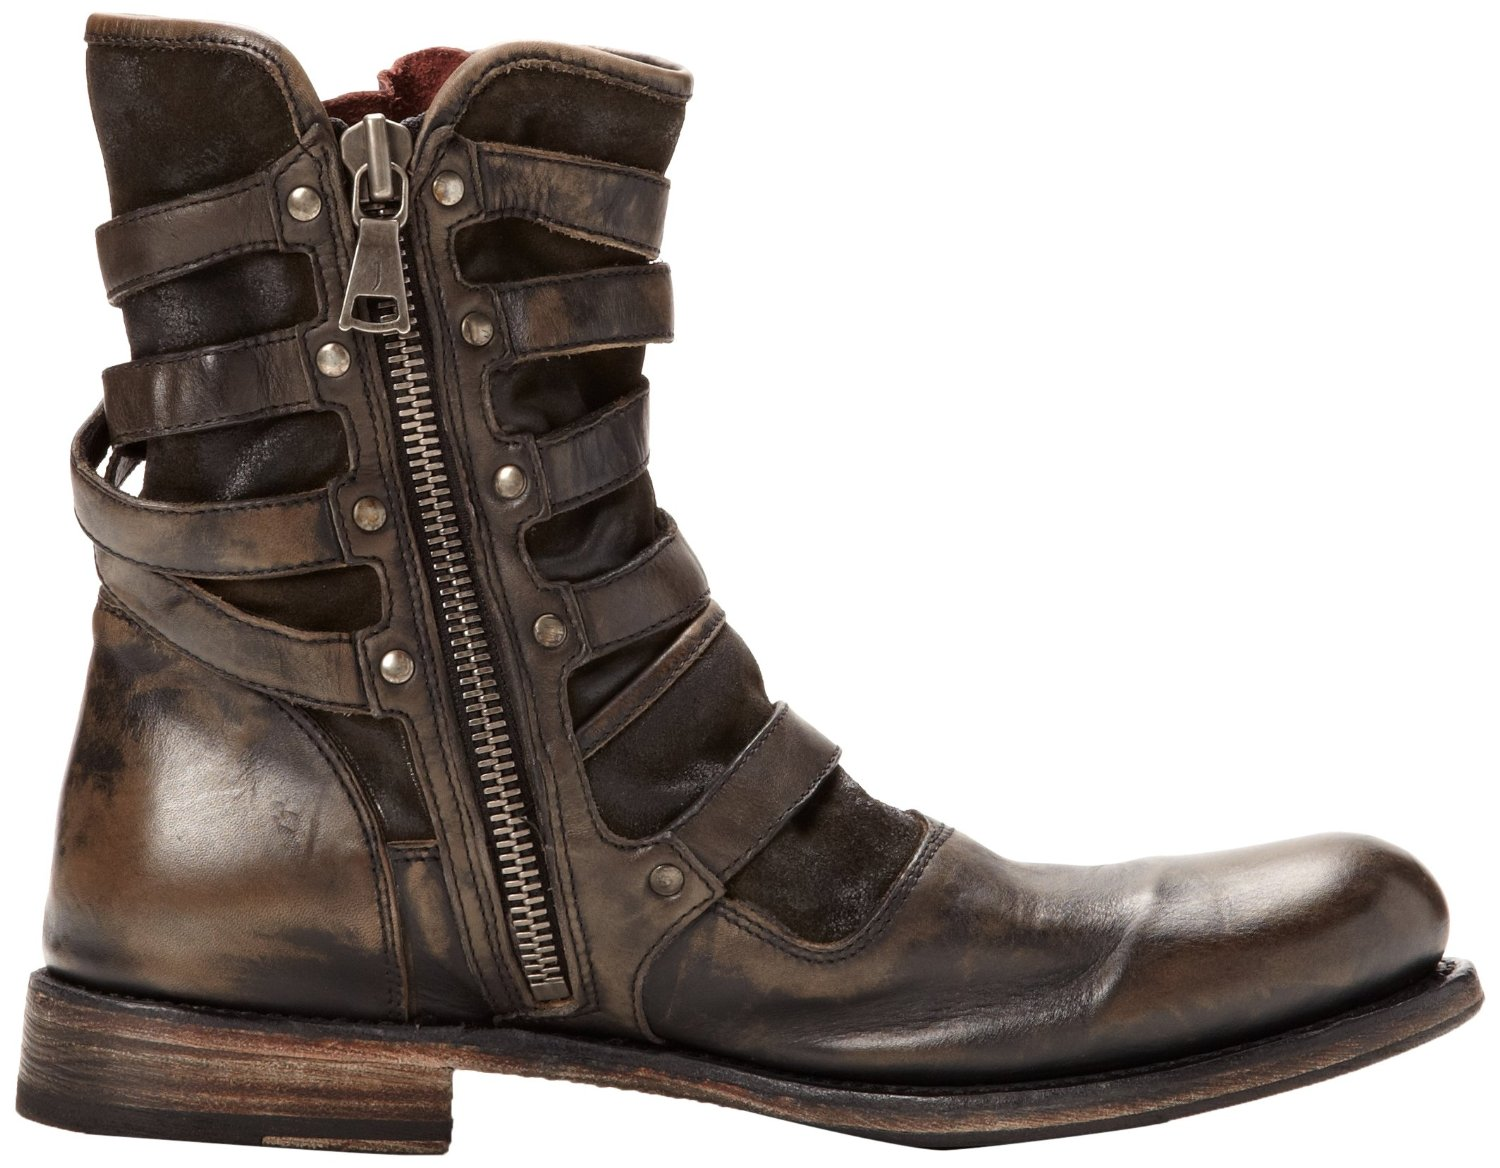 Designer Boots For Men 5eliyVeY